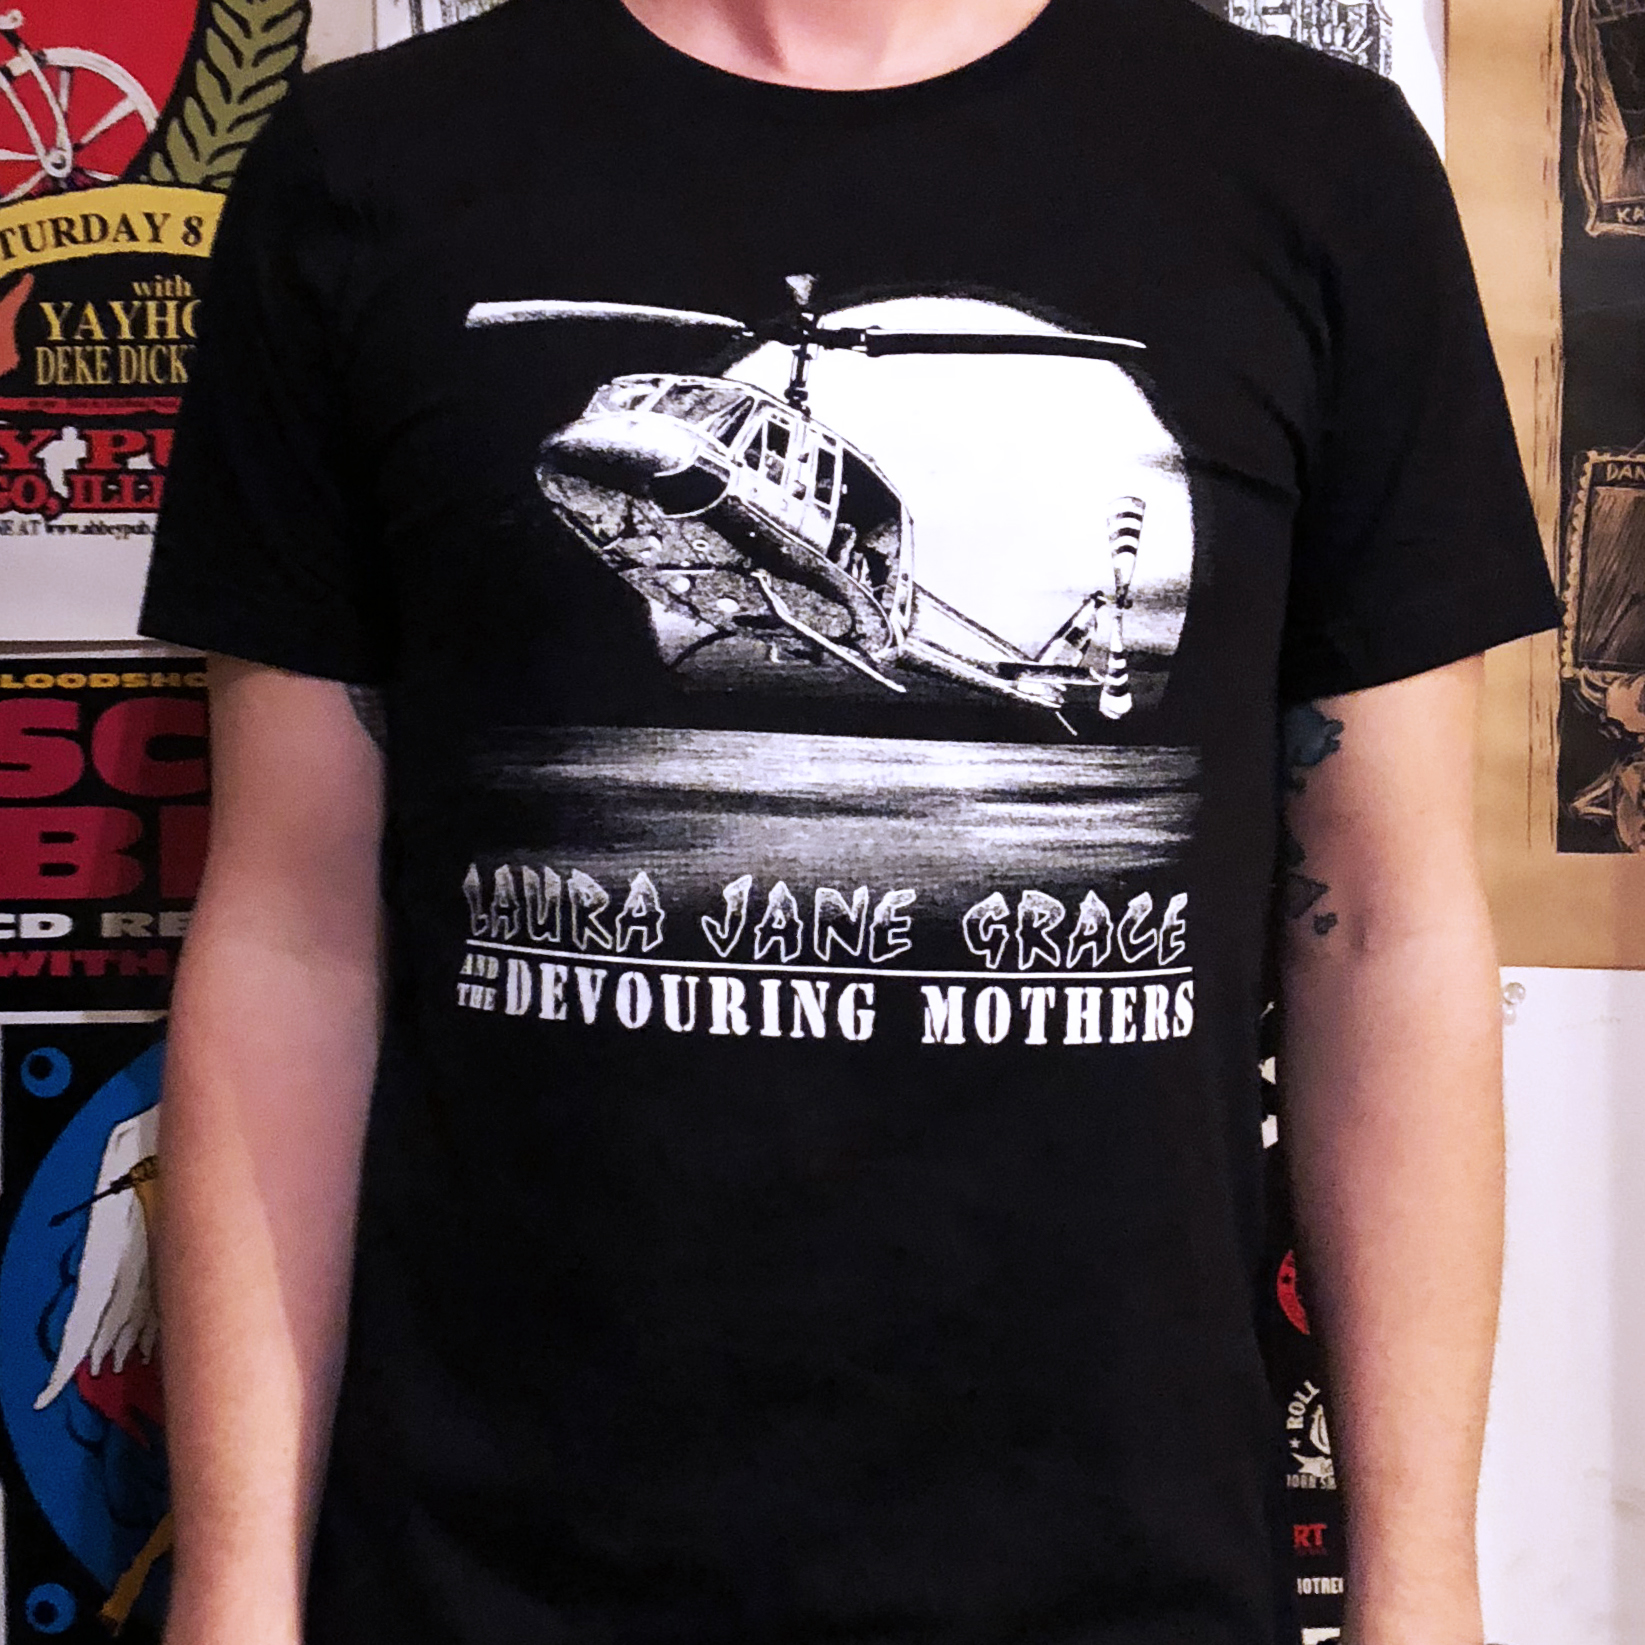 Laura Jane Grace & the Devouring Mothers Helicopter T-Shirt